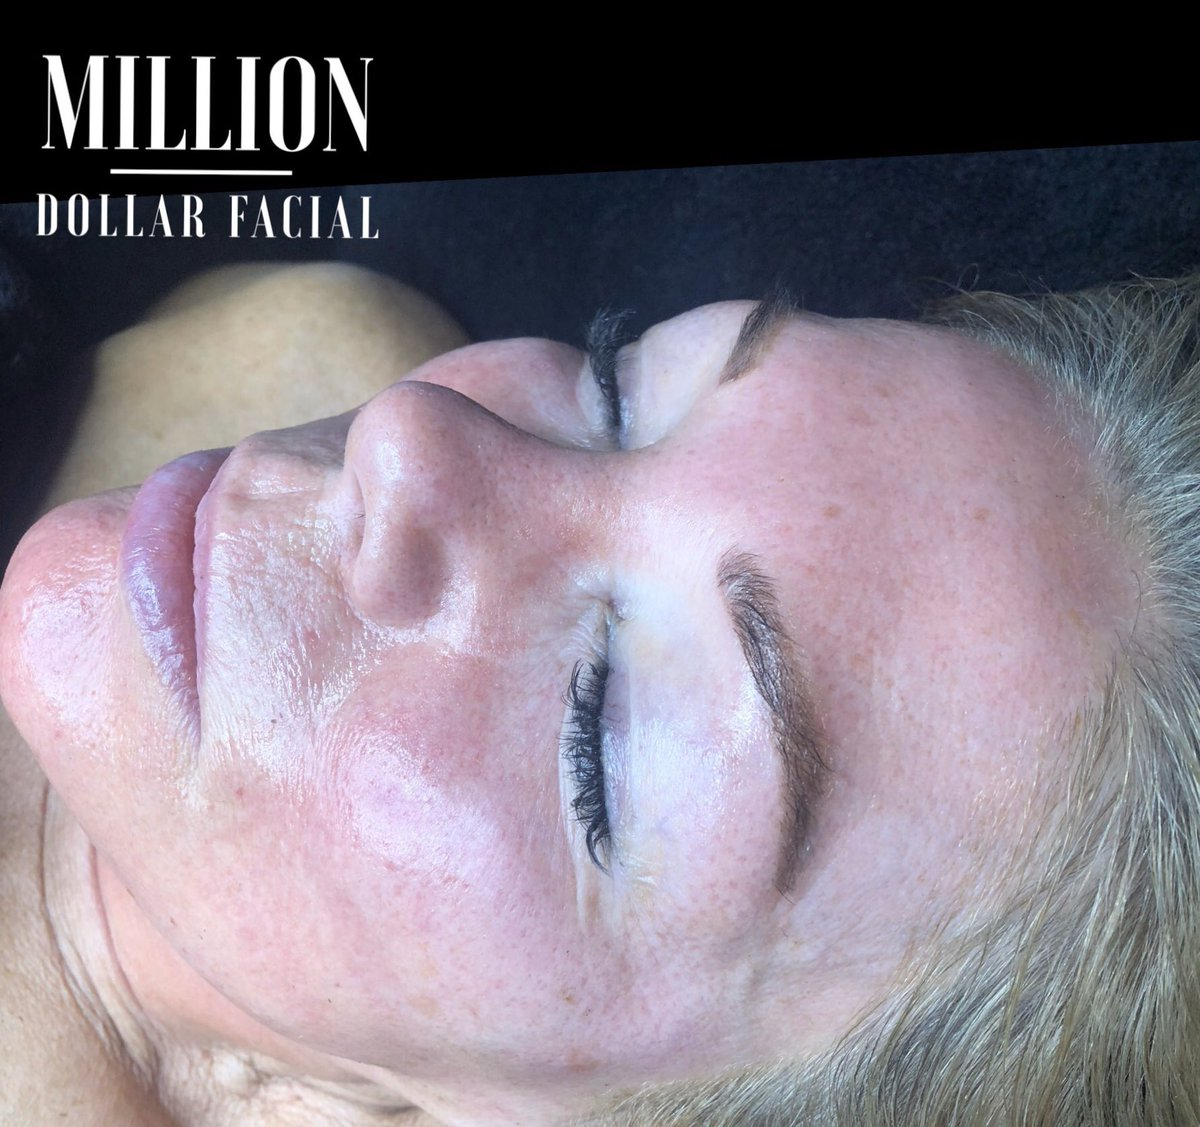 Another happy client   Be good to your skin you will wear it for the rest of your life !  #Milliondollarfacials #milliondollarfacial #Carbonpeel #miraclemask #dermaplane #dermaplaning #skincare #facial #beauty #dermaplaningfacial #facials #trending #luxaryfacialspic.twitter.com/hV90nO0b4R